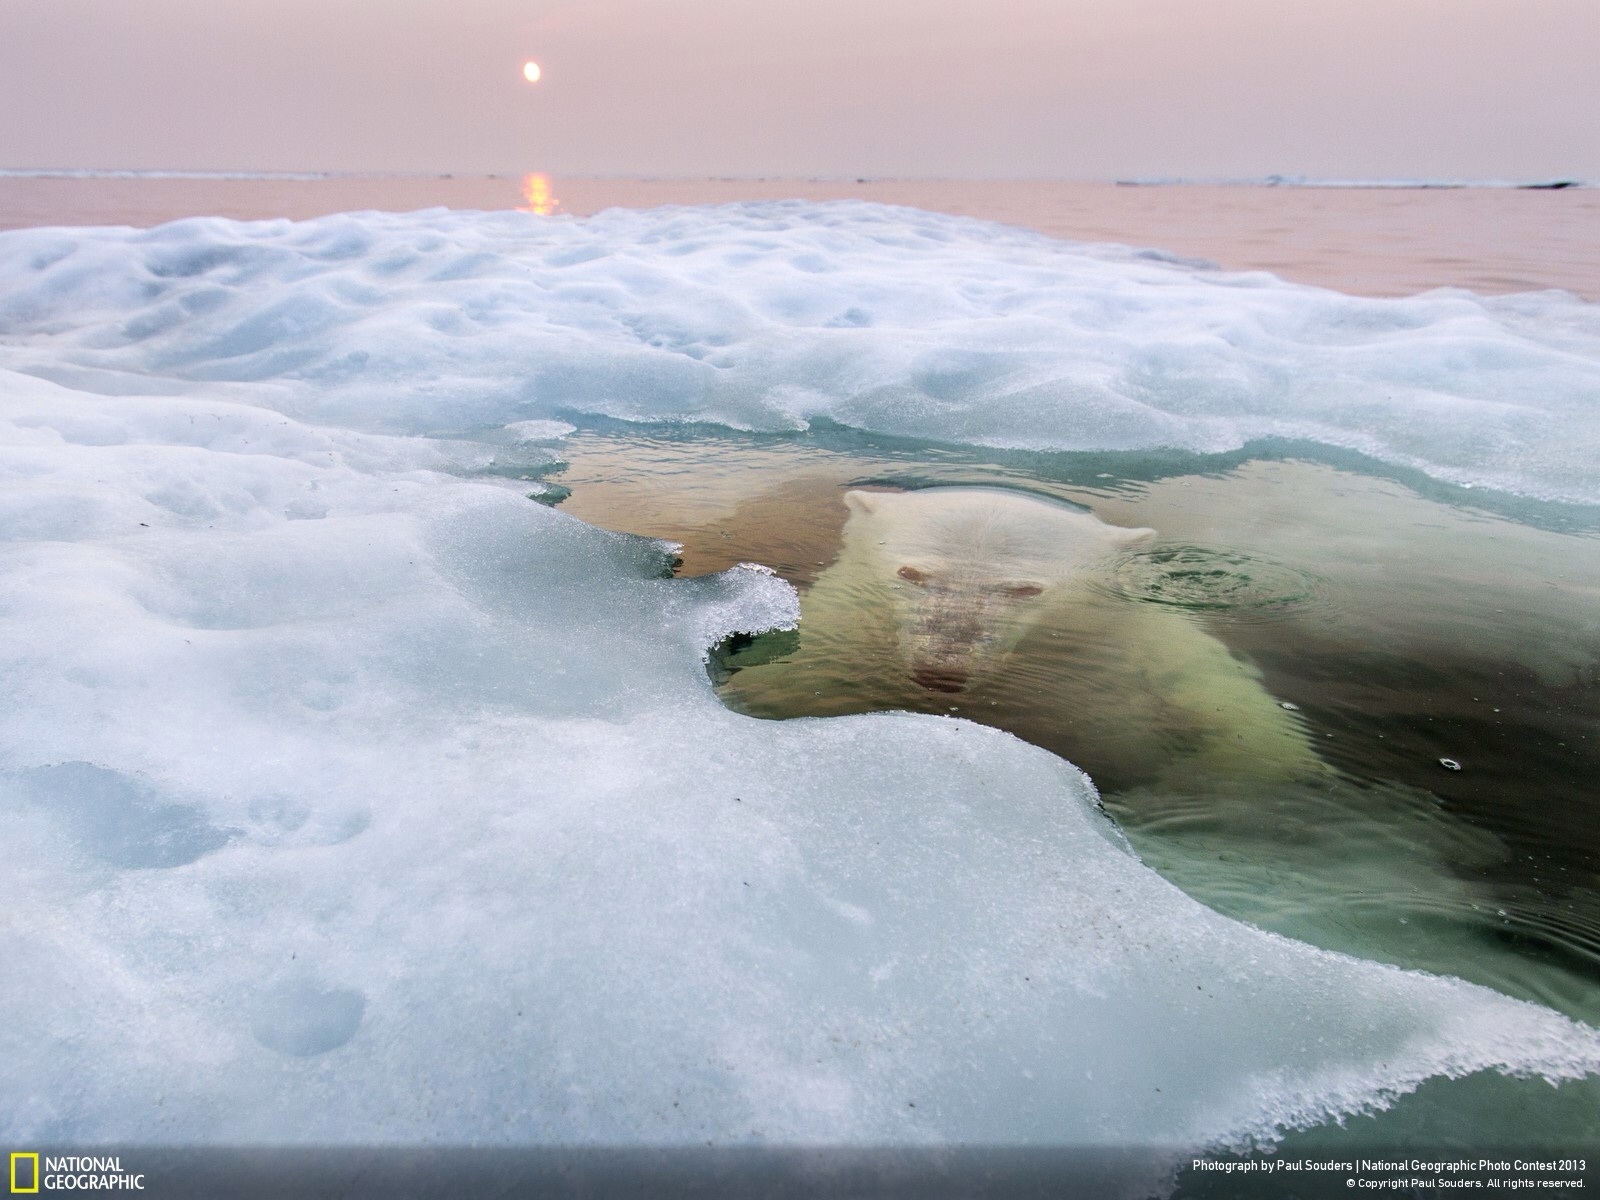 Waiting bear. Photo by Paul Souders.